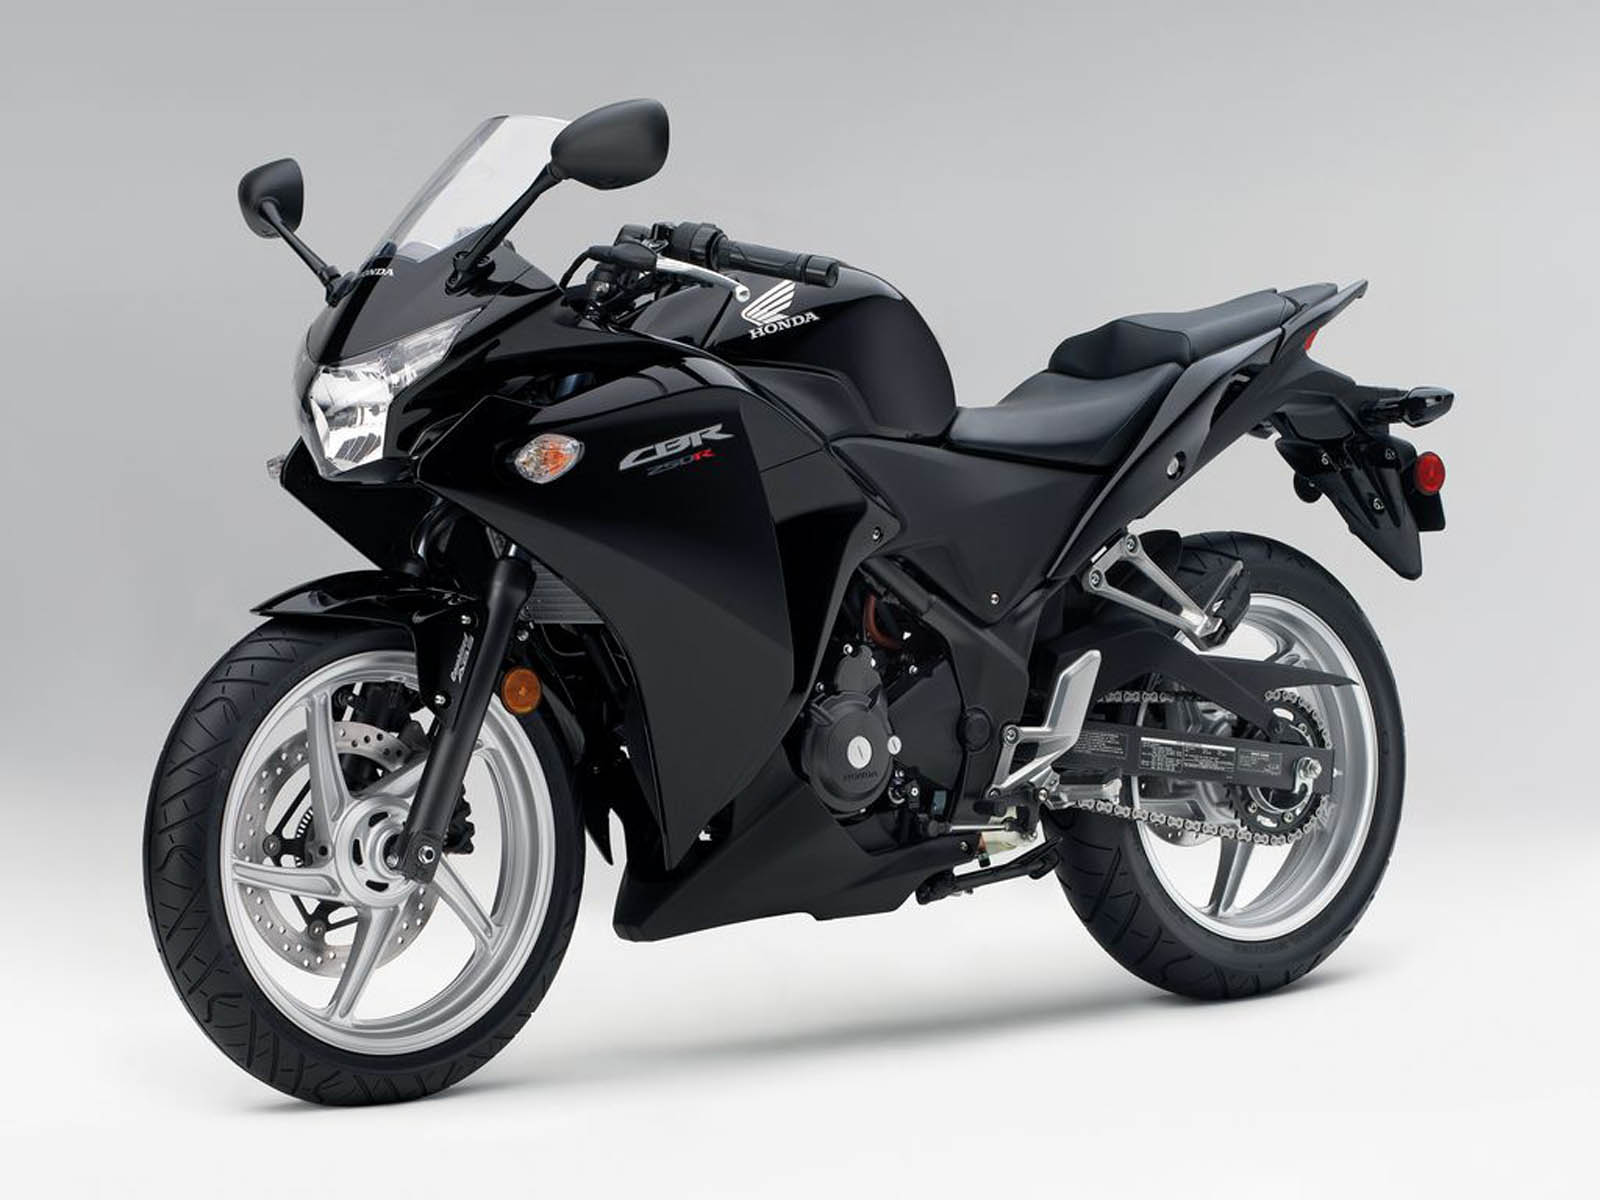 wallpapers honda cbr 250r bike wallpapers. Black Bedroom Furniture Sets. Home Design Ideas